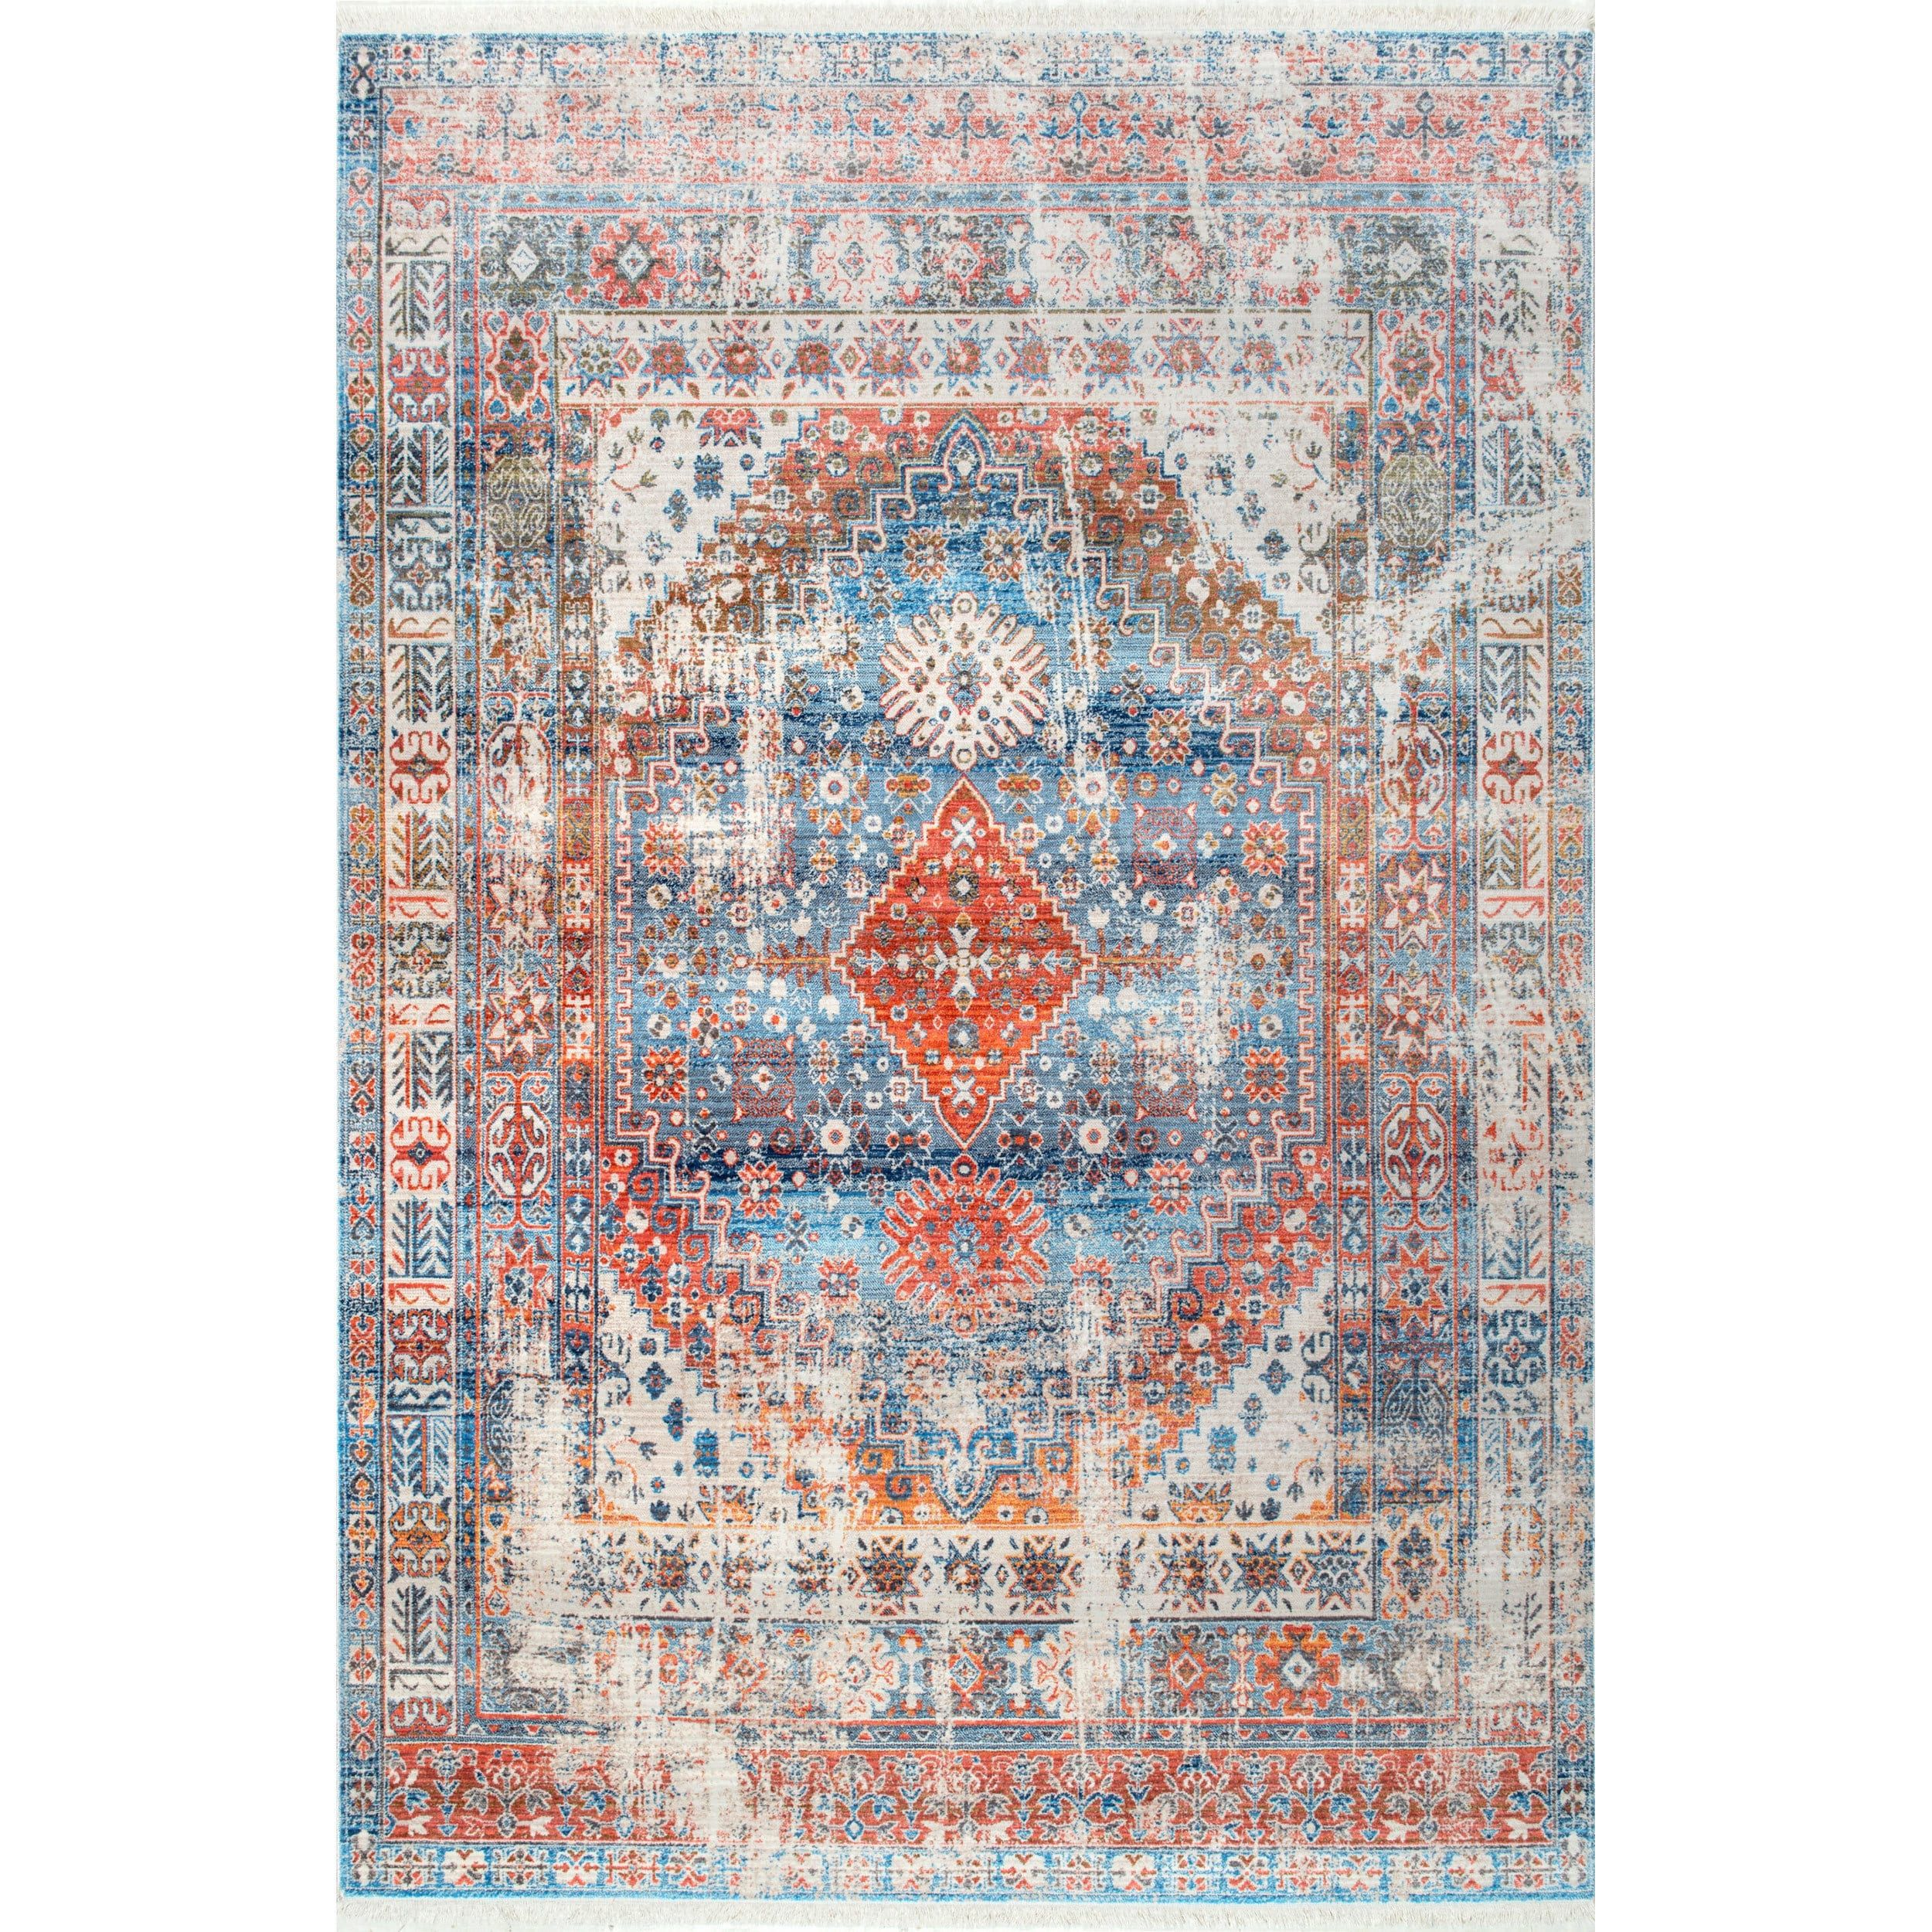 Nuloom Vintage Faded Olden Tribal Medallion Area Rug Area Rugs Orange Rugs Blue Area Rugs